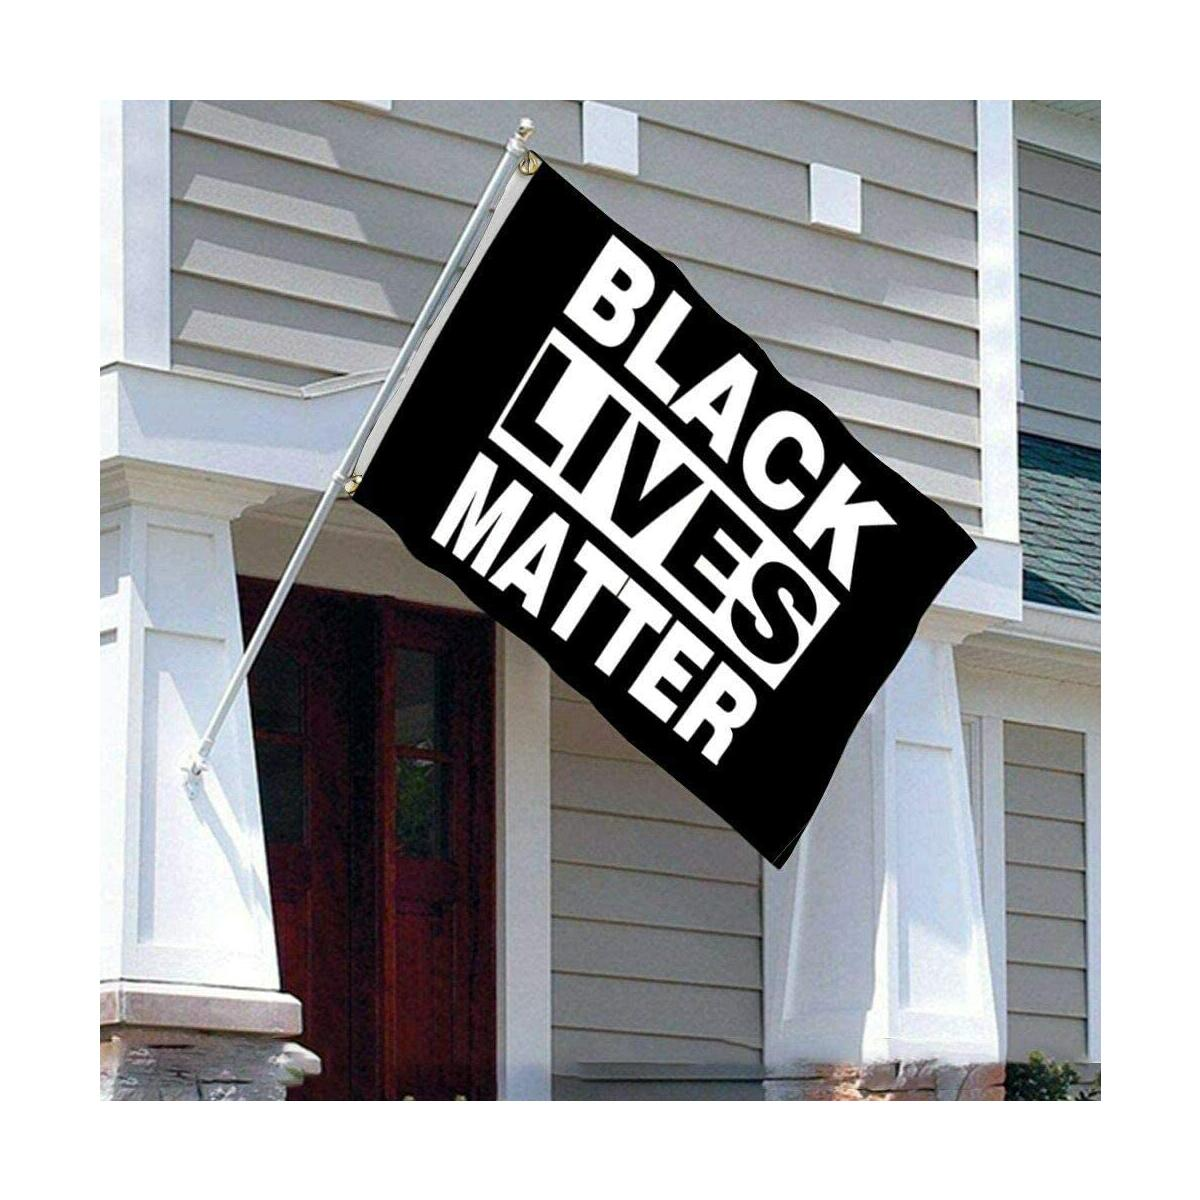 uHome Black Lives Matter Flag 3' x 5' (90 x 150 cm) Polyester, BLM Peace Protest Banner for Outdoor Activities or House, Apartment or Garden